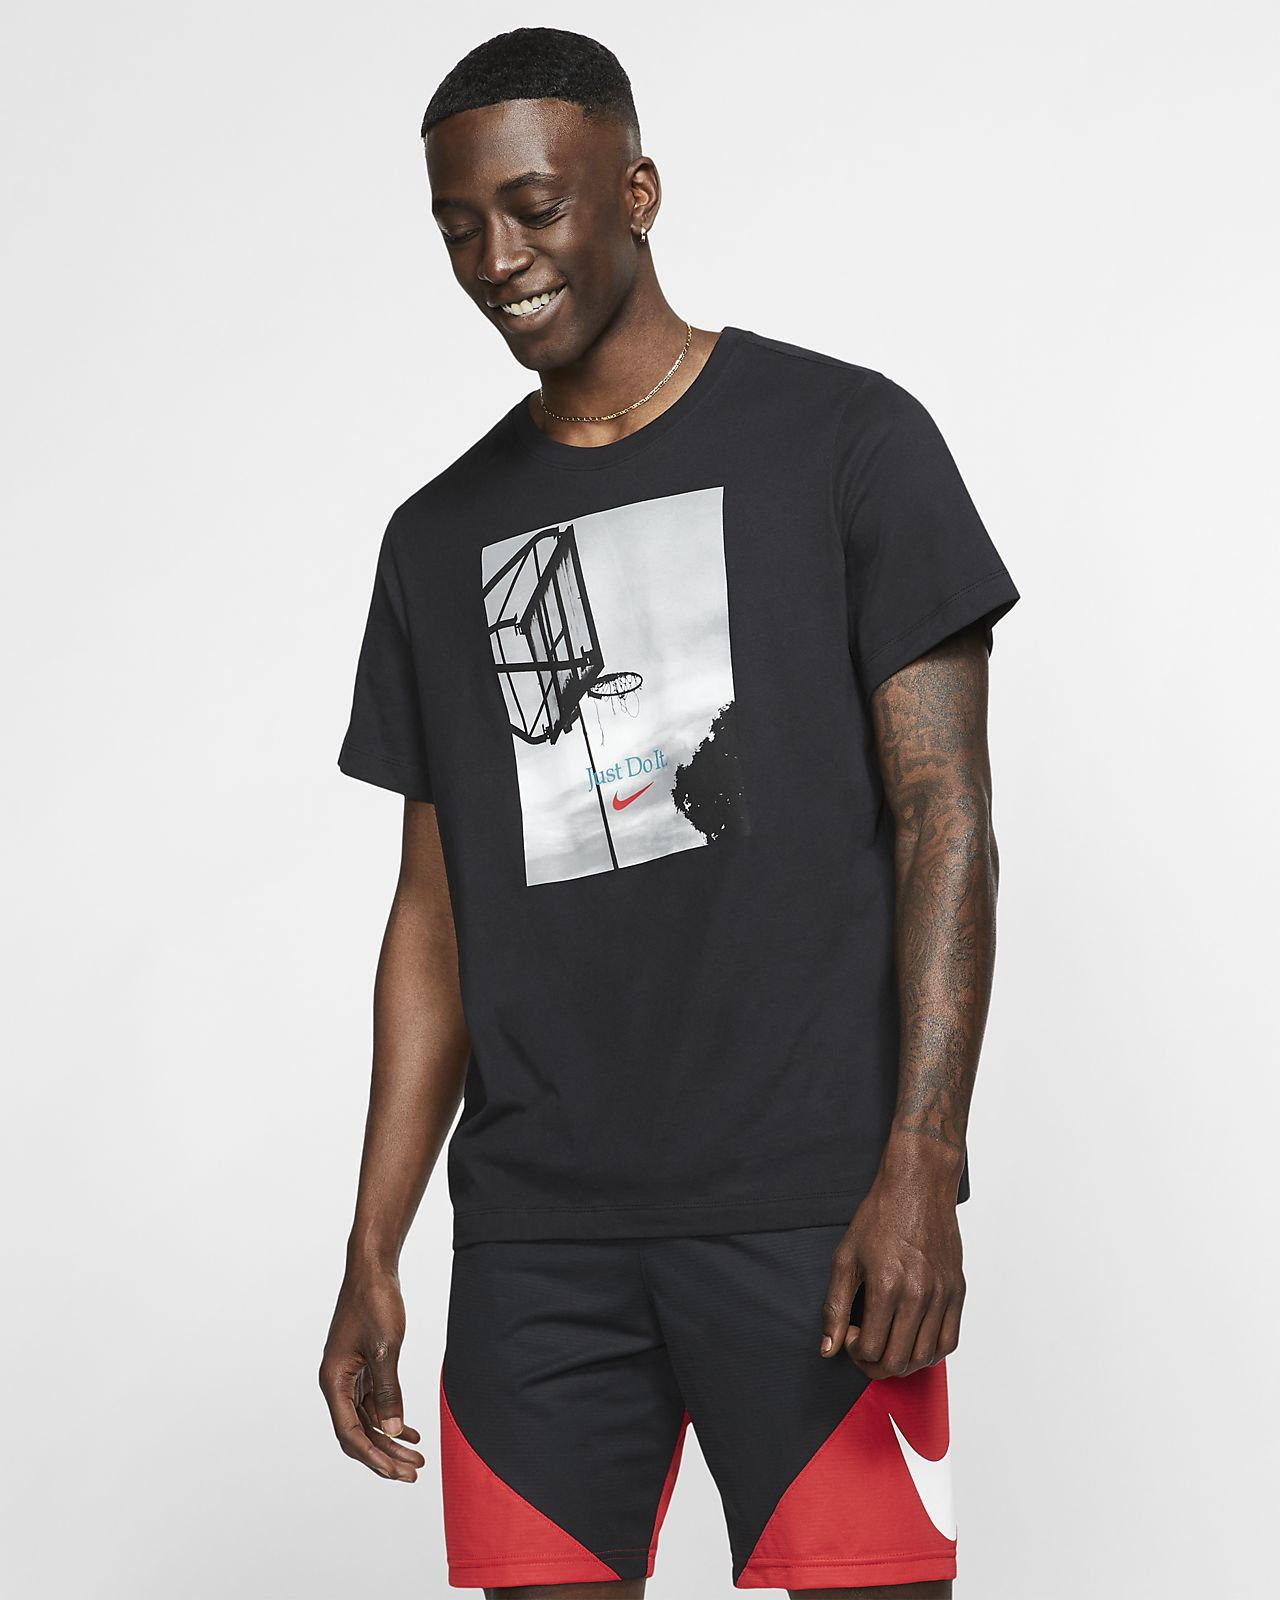 Tee-shirt de basketball Nike Dri-FIT « Just Do It. » pour Homme